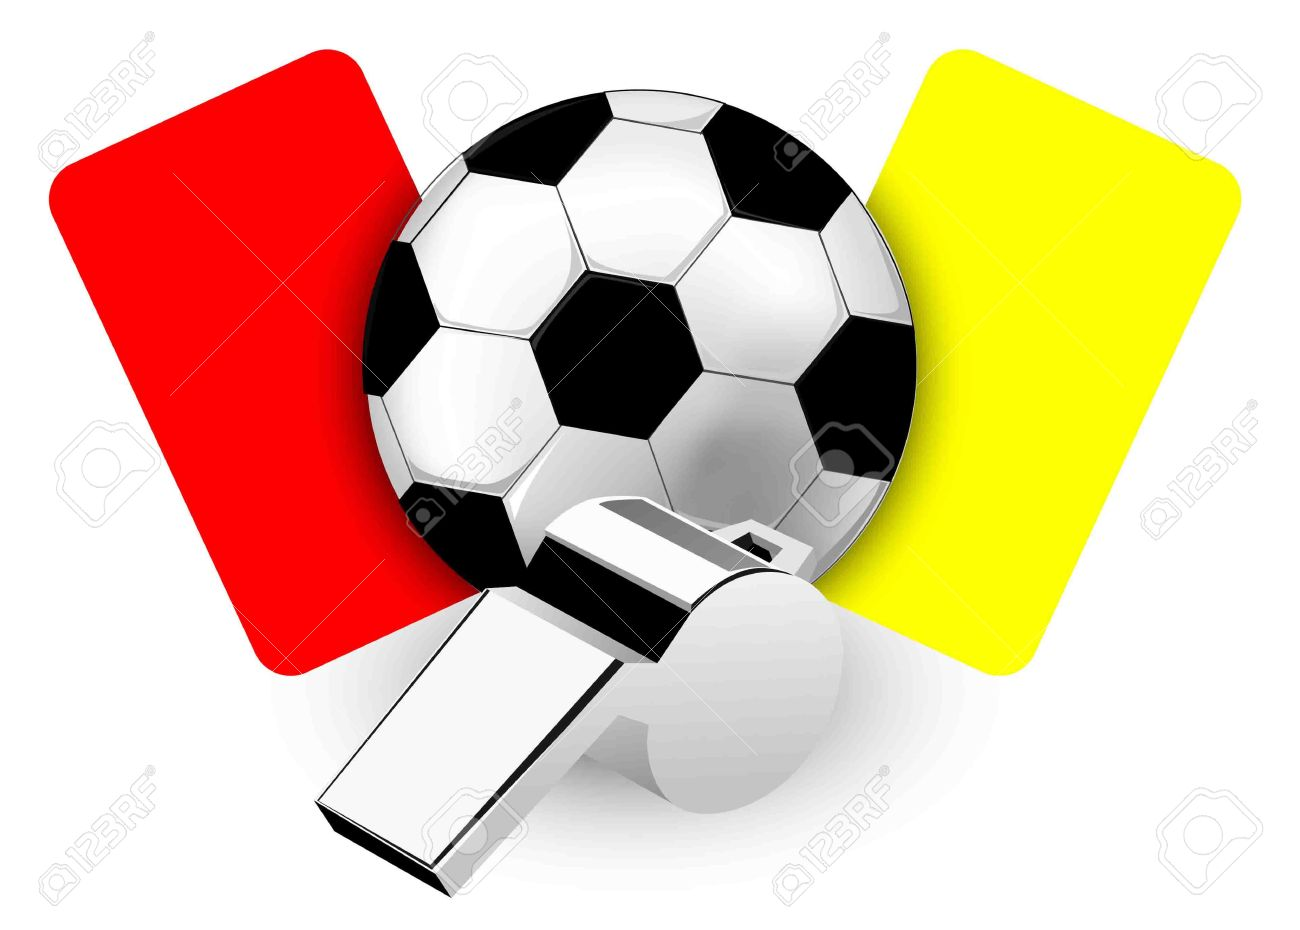 Soccer Referee Resume Les Convocations Du Week End Club Football Usc Saint